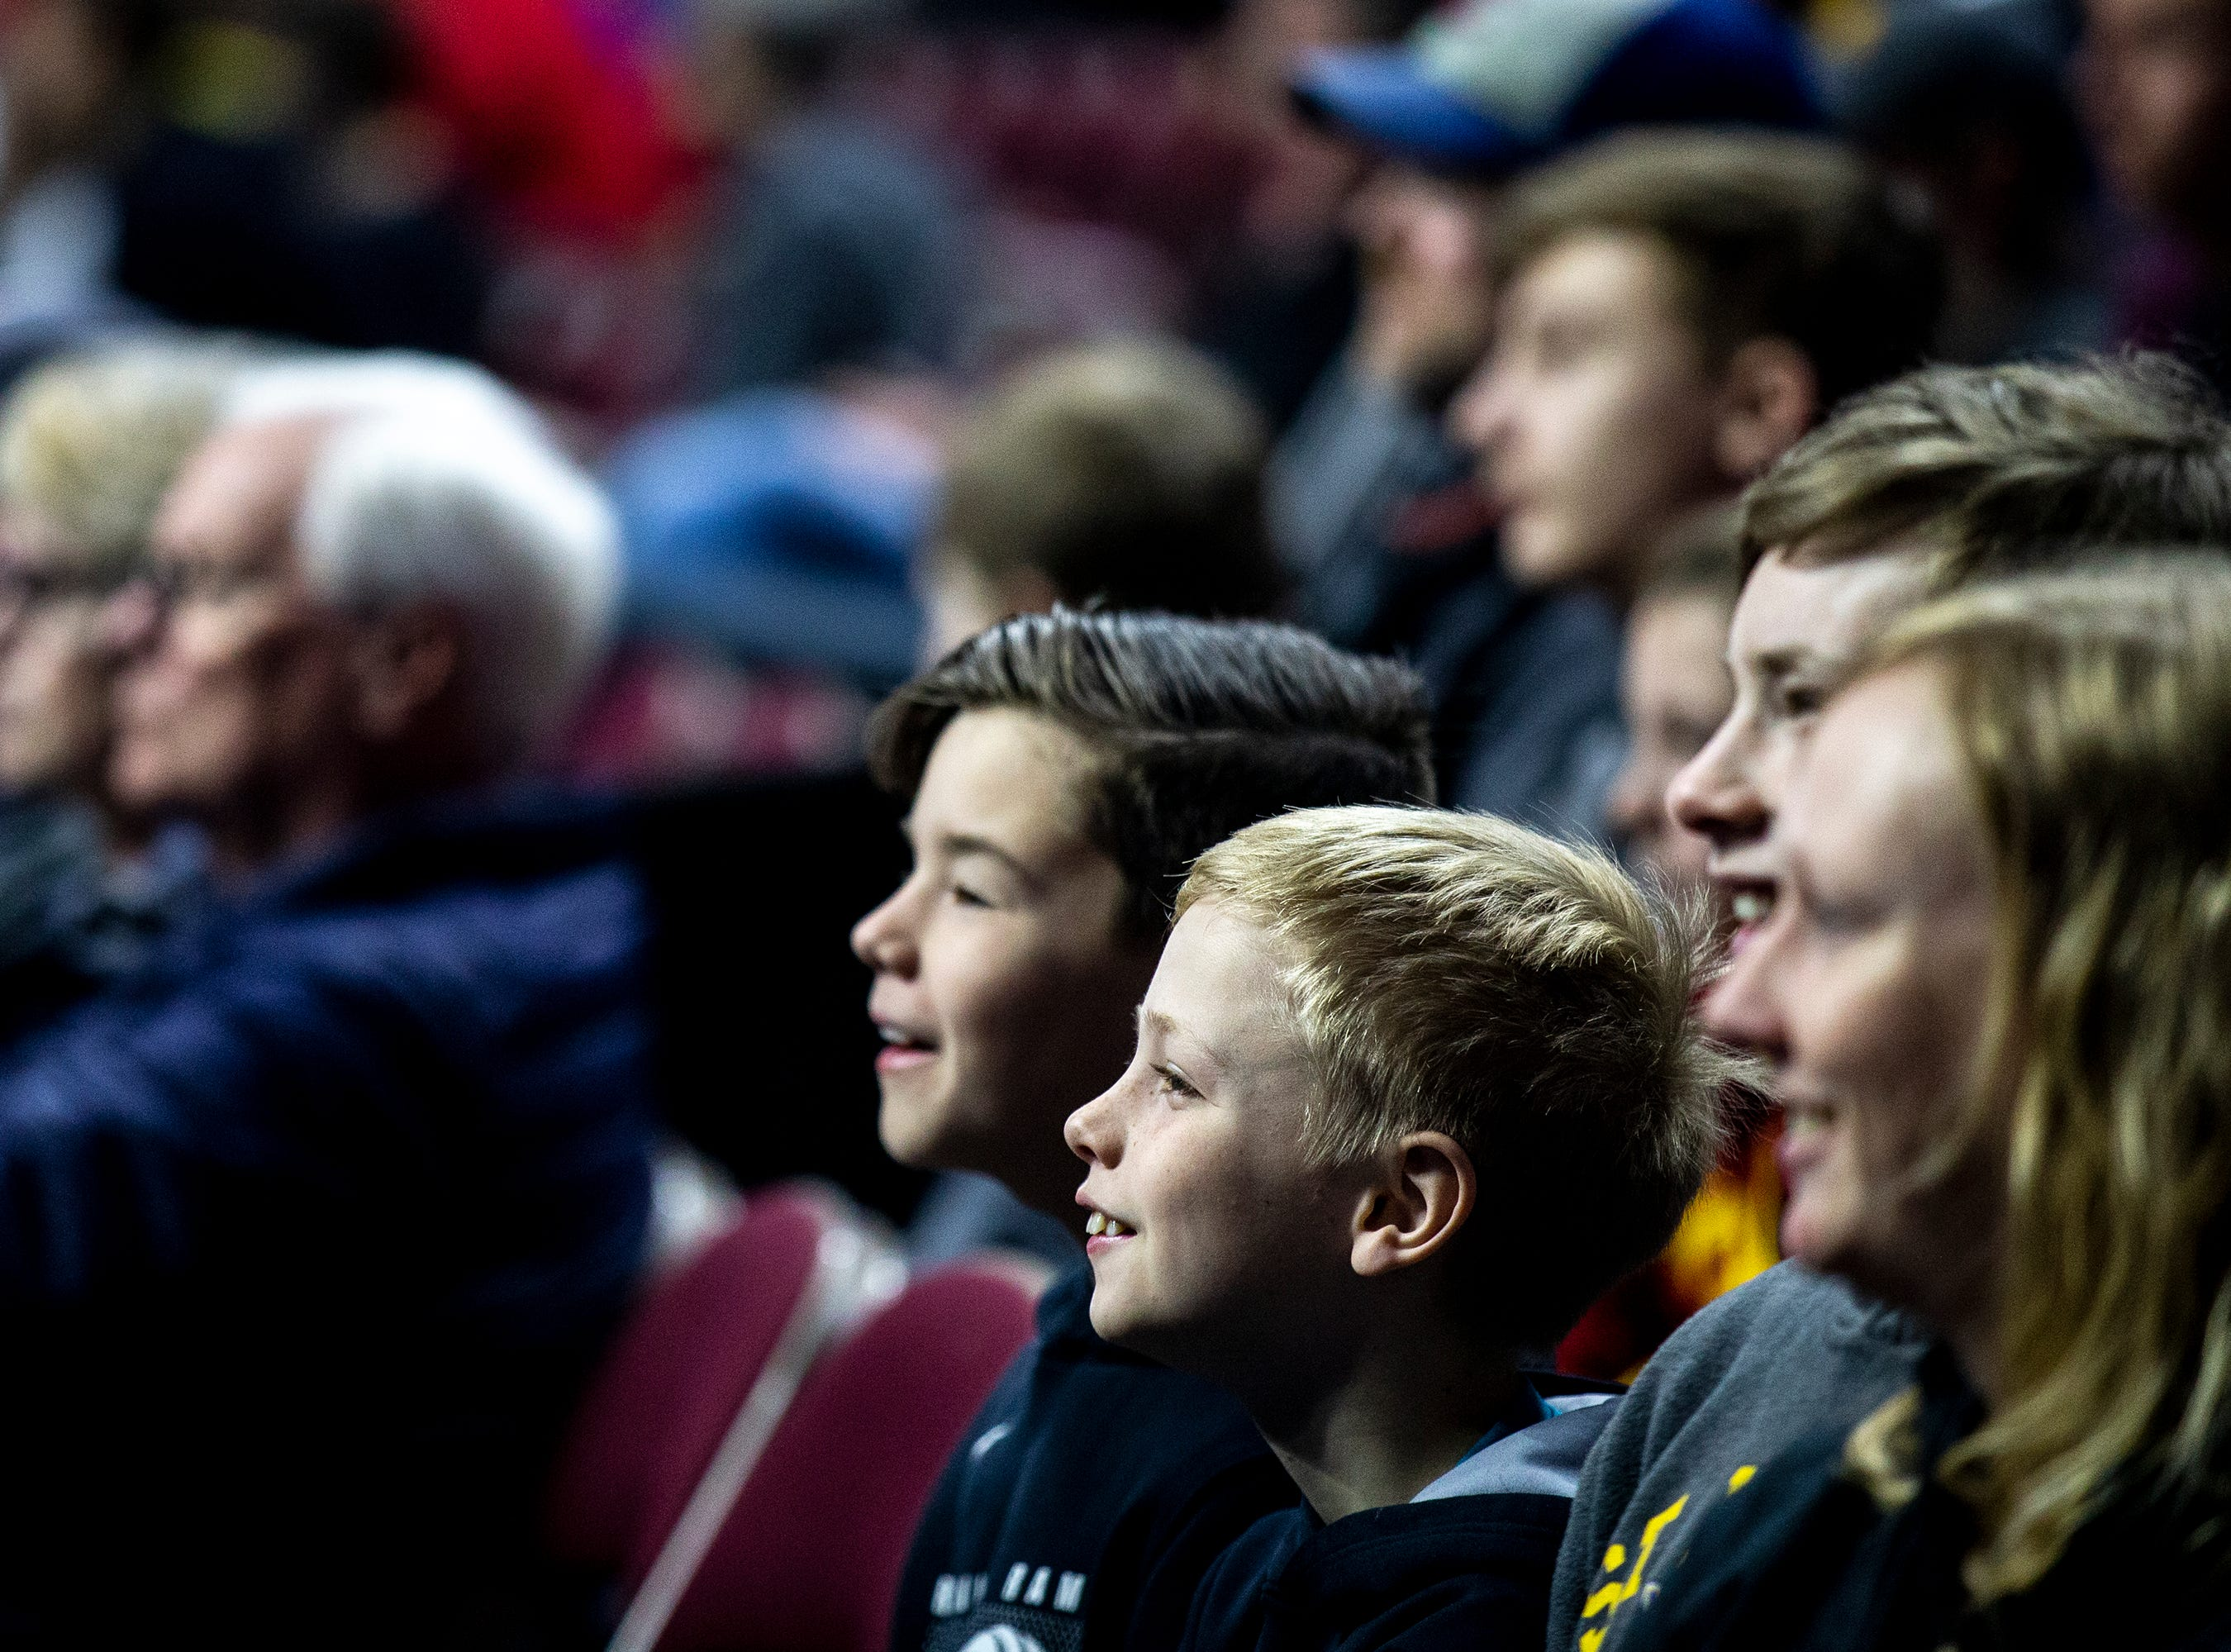 Young basketball fans watch from the stands during Minnesota's open practice before the first round of the NCAA Men's Basketball Tournament on Wednesday, March 20, 2019, at Wells Fargo Arena in Des Moines, Iowa. Minnesota will face Louisville in the first round on Thursday.